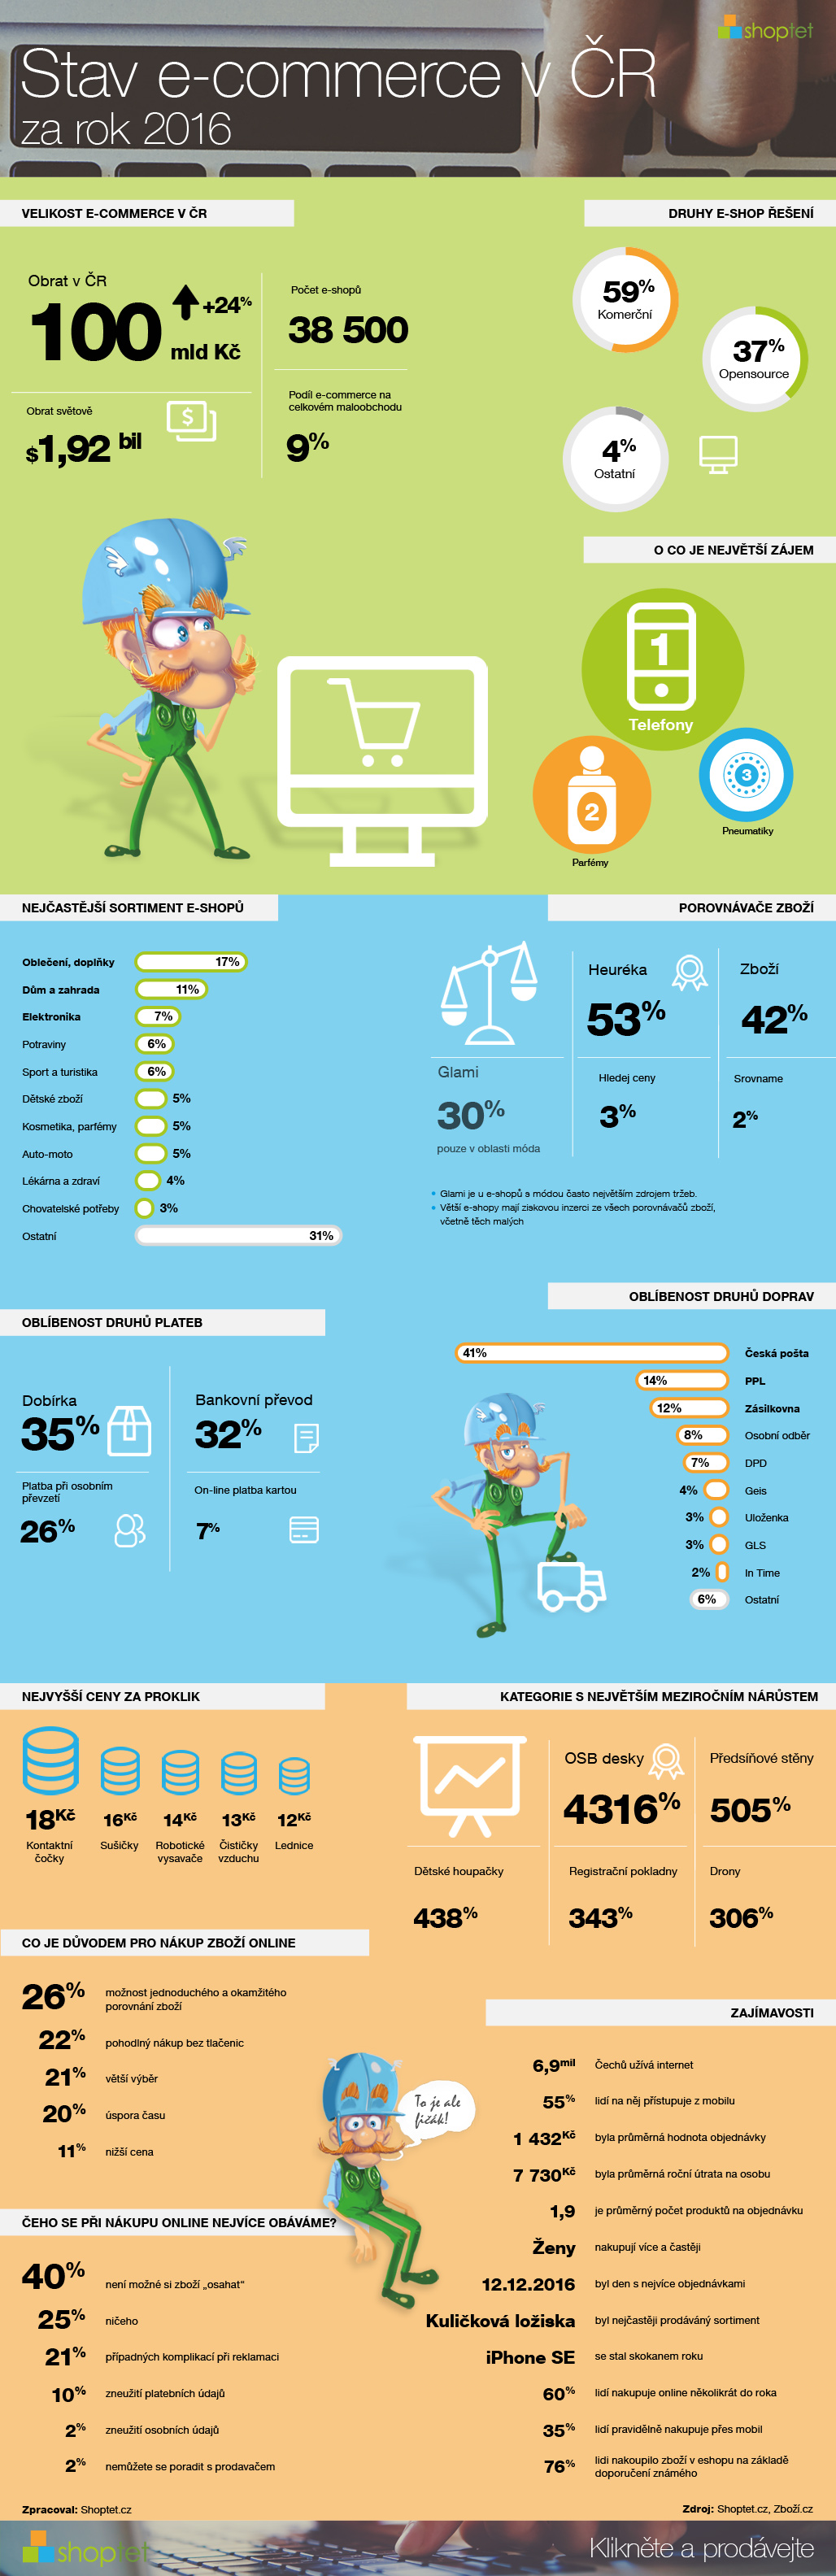 291216_shoptet-infografika-stav_e-commerce_2016-1